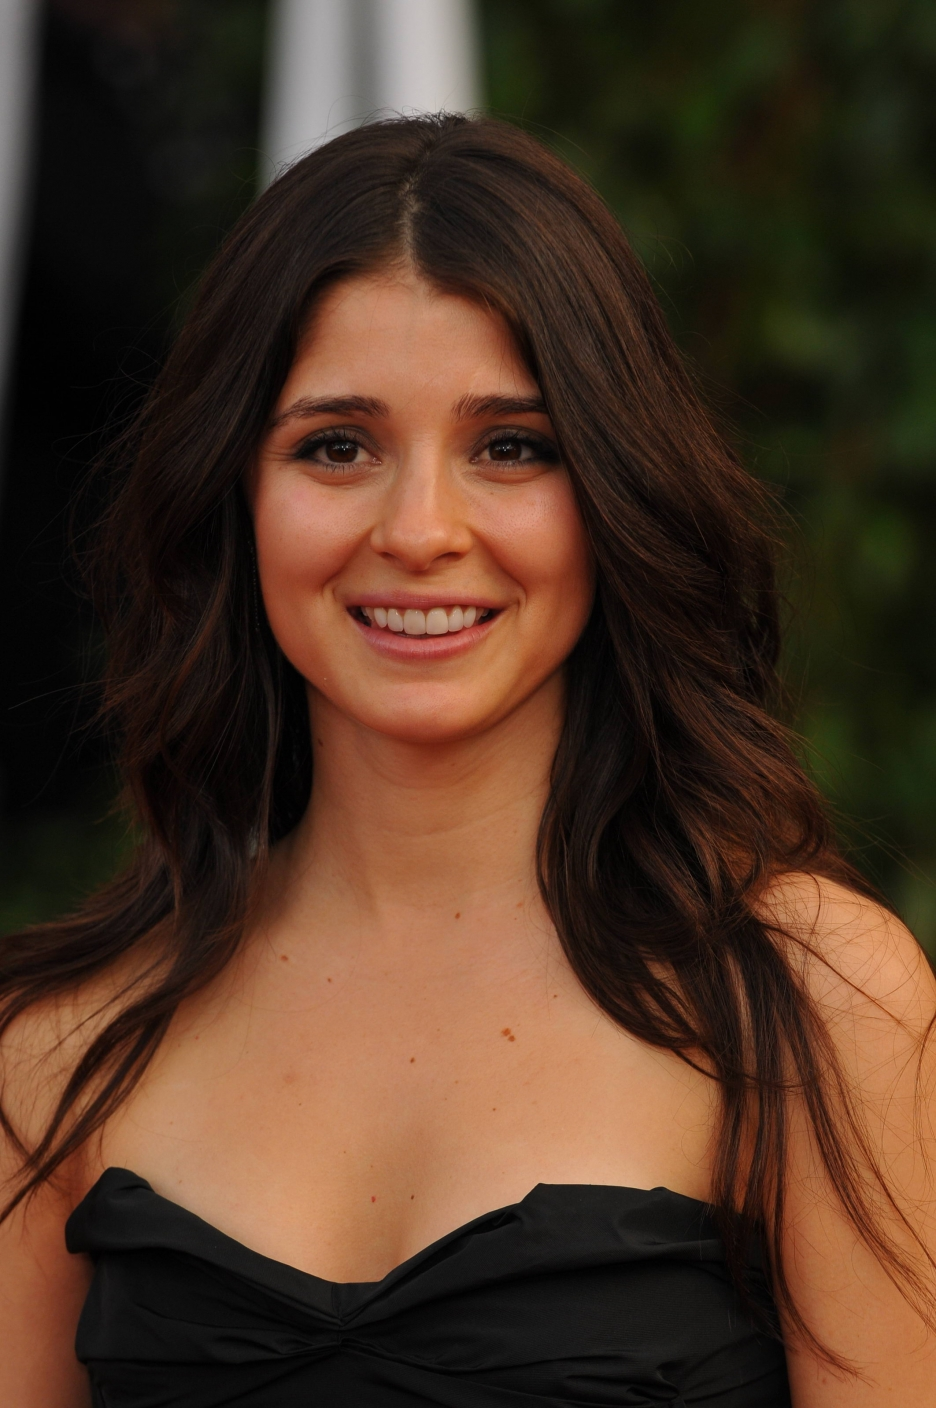 shiri applebyshiri appleby see through, shiri appleby instagram, shiri appleby husband, shiri appleby chicago fire, shiri appleby, shiri appleby imdb, shiri appleby and jason behr, shiri appleby twitter, shiri appleby wiki, shiri appleby 2015, shiri appleby unreal, shiri appleby jon shook, shiri appleby roswell, shiri appleby 2014